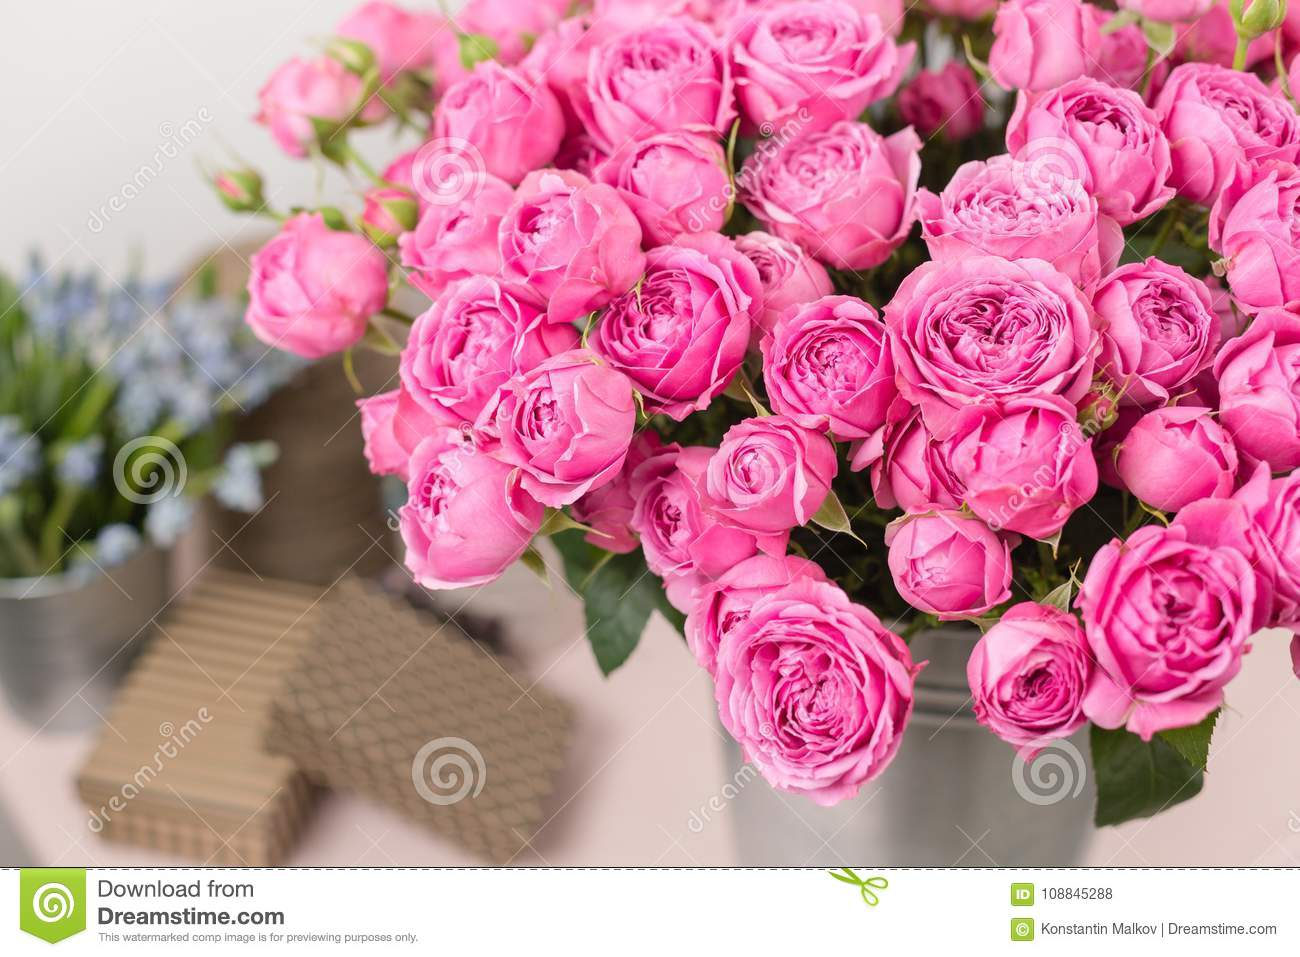 Rose Peony Misty Bubbles Bouquet Flowers Of Pink Roses In Metal